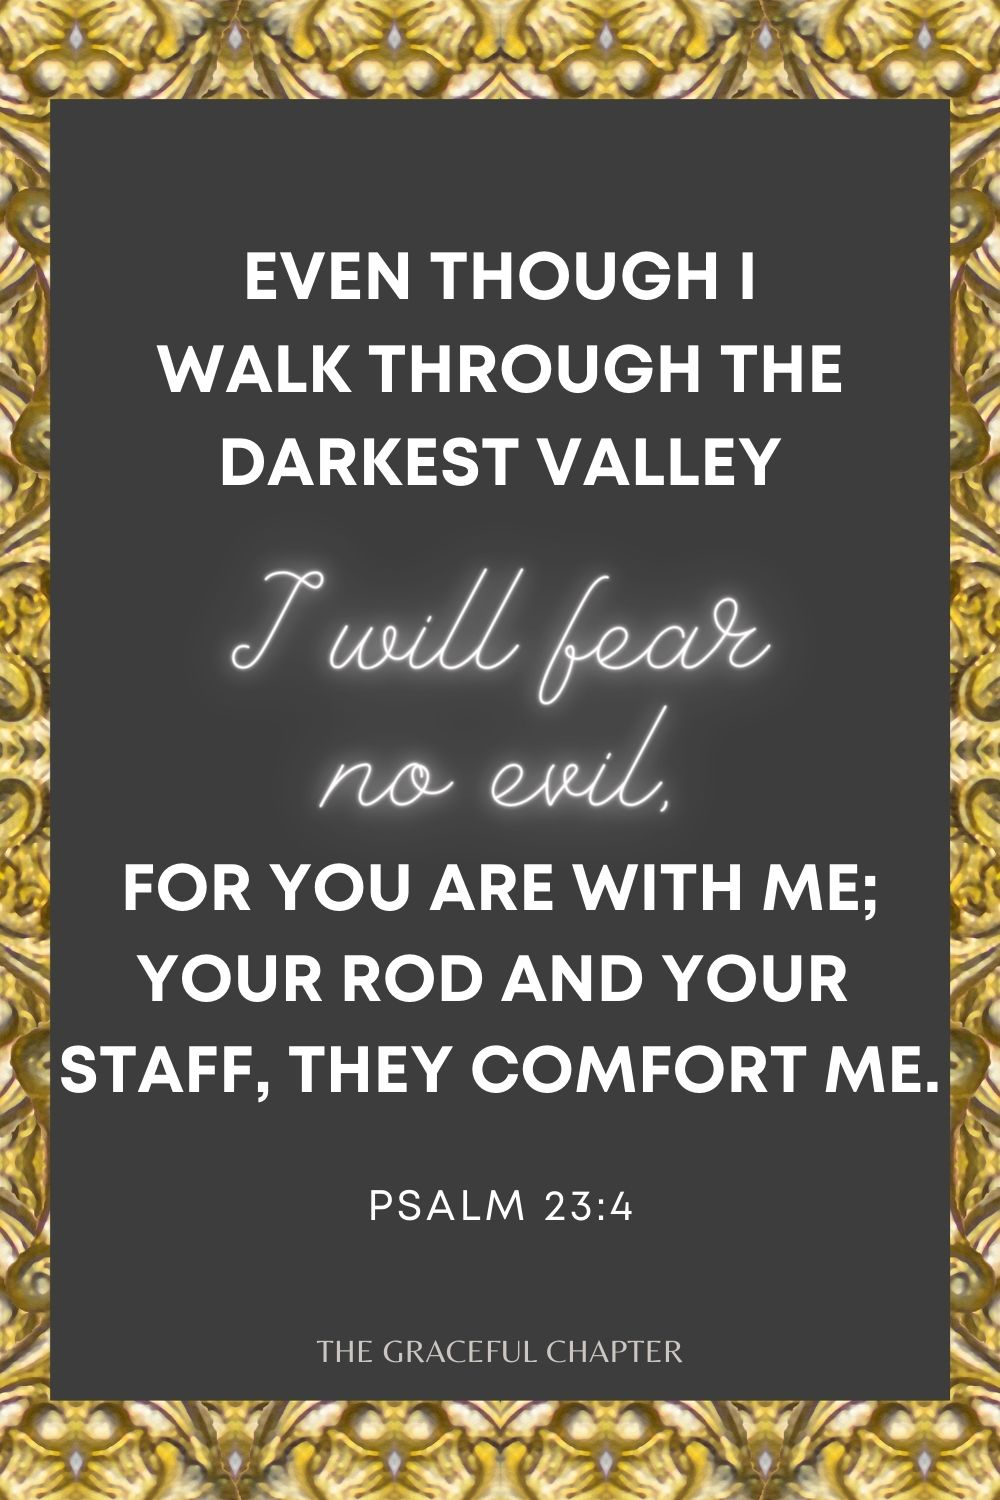 Even though I walk through the darkest valley I will fear no evil, for you are with me; your rod and your staff, they comfort me. Psalm 23:4